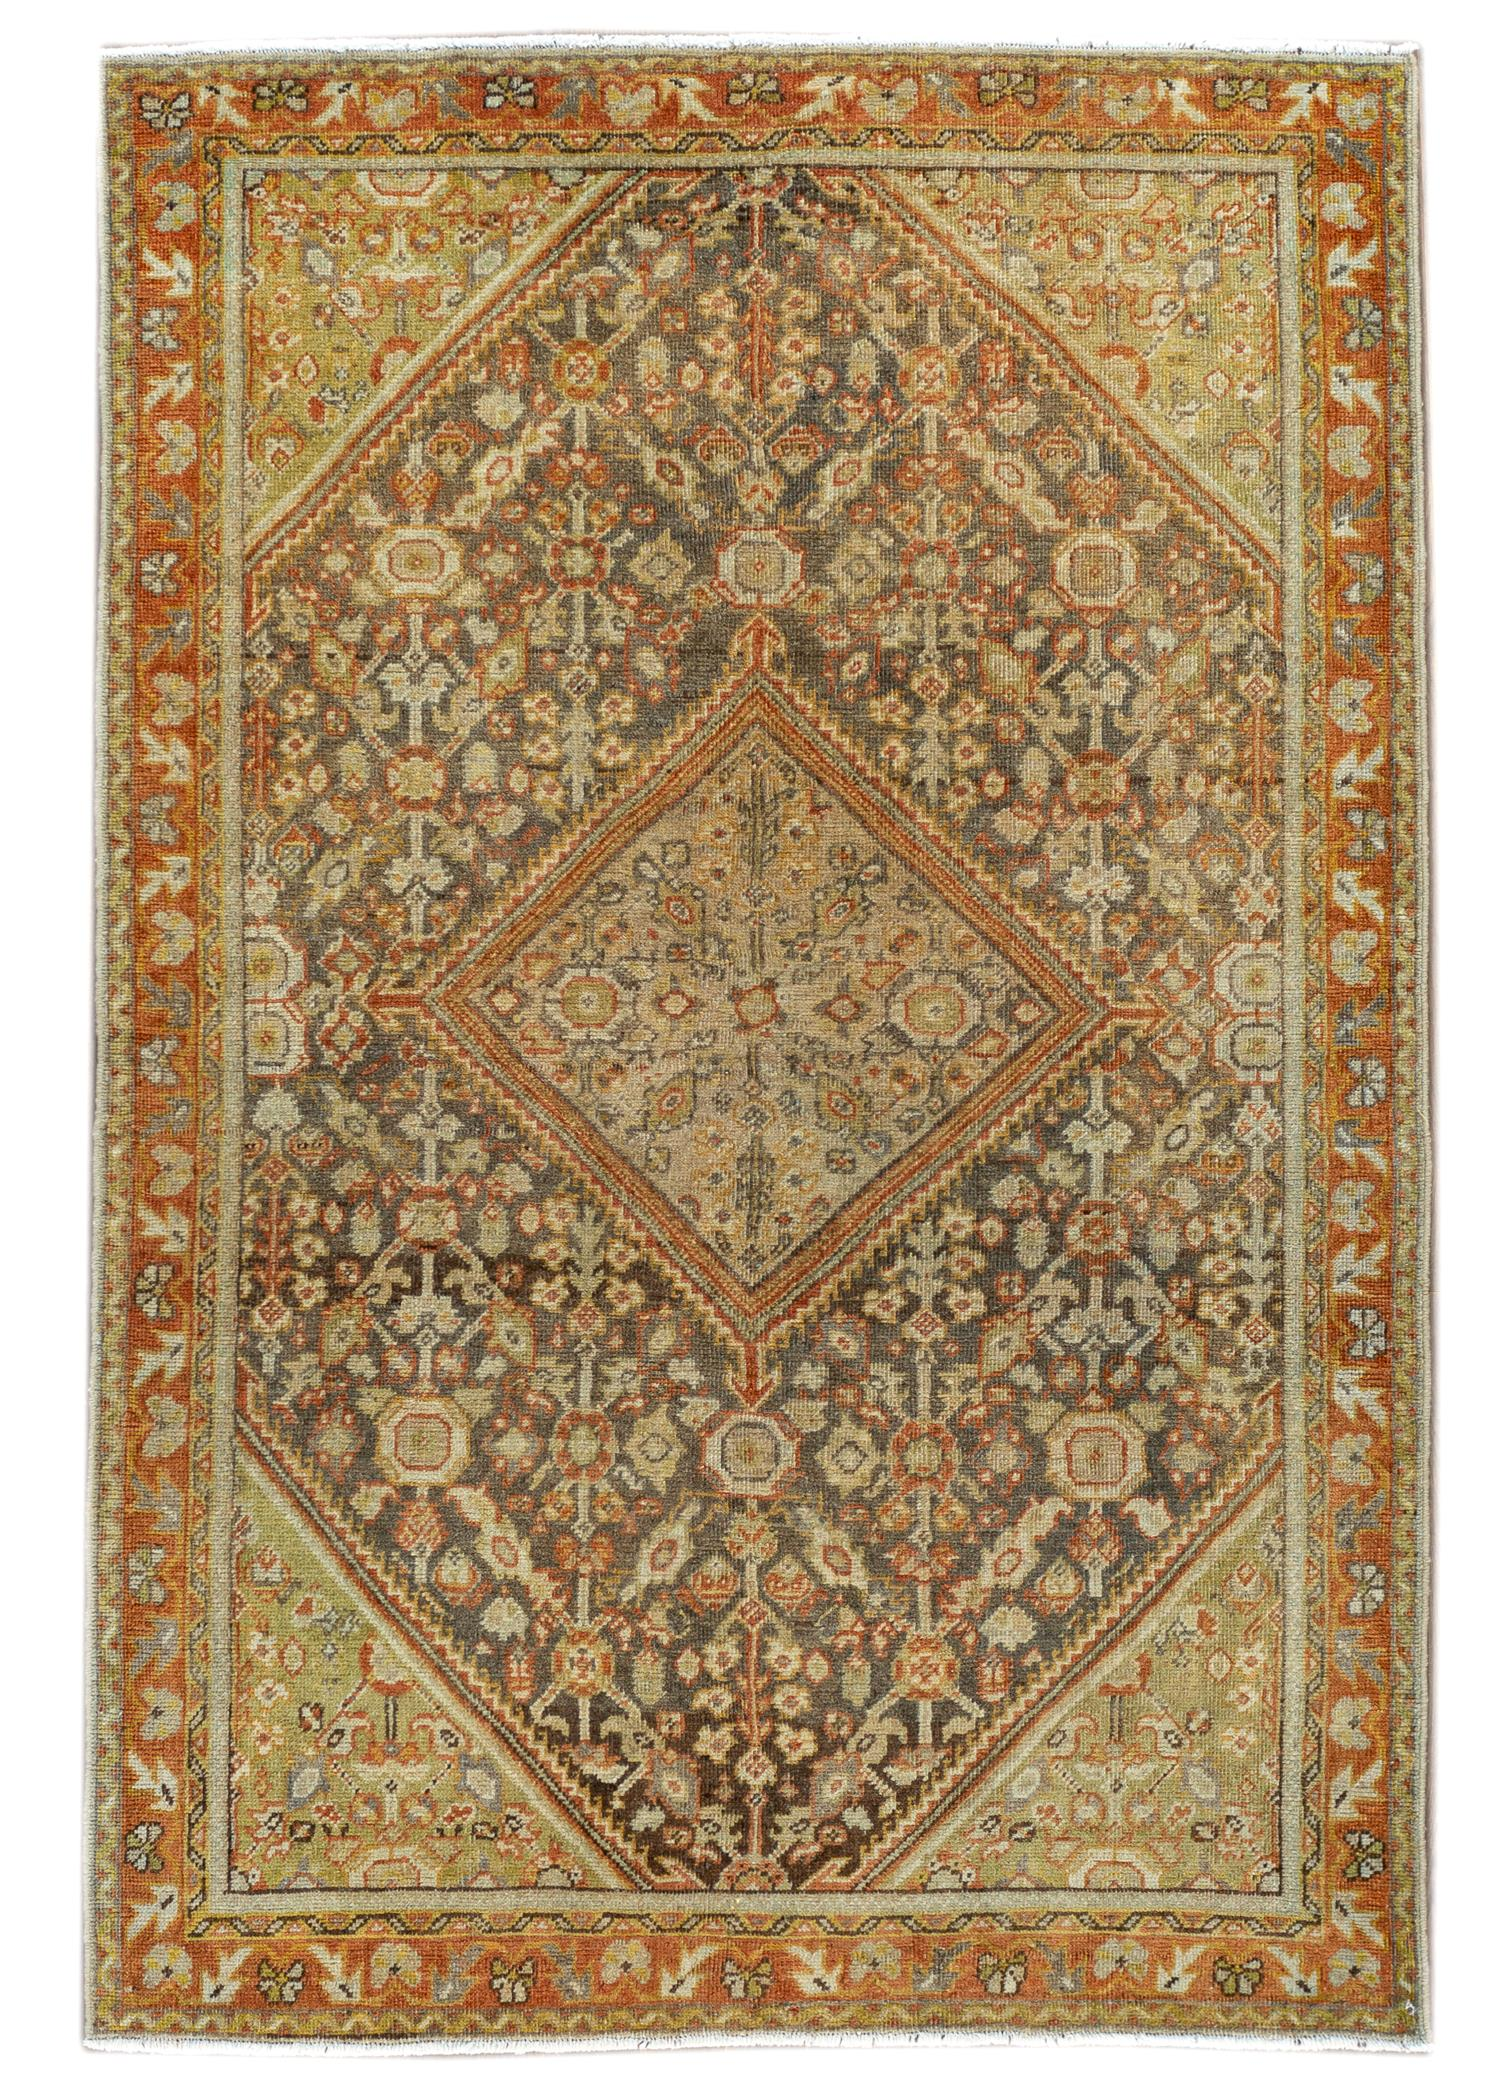 Antique Mahal Rug,  5' x 7'